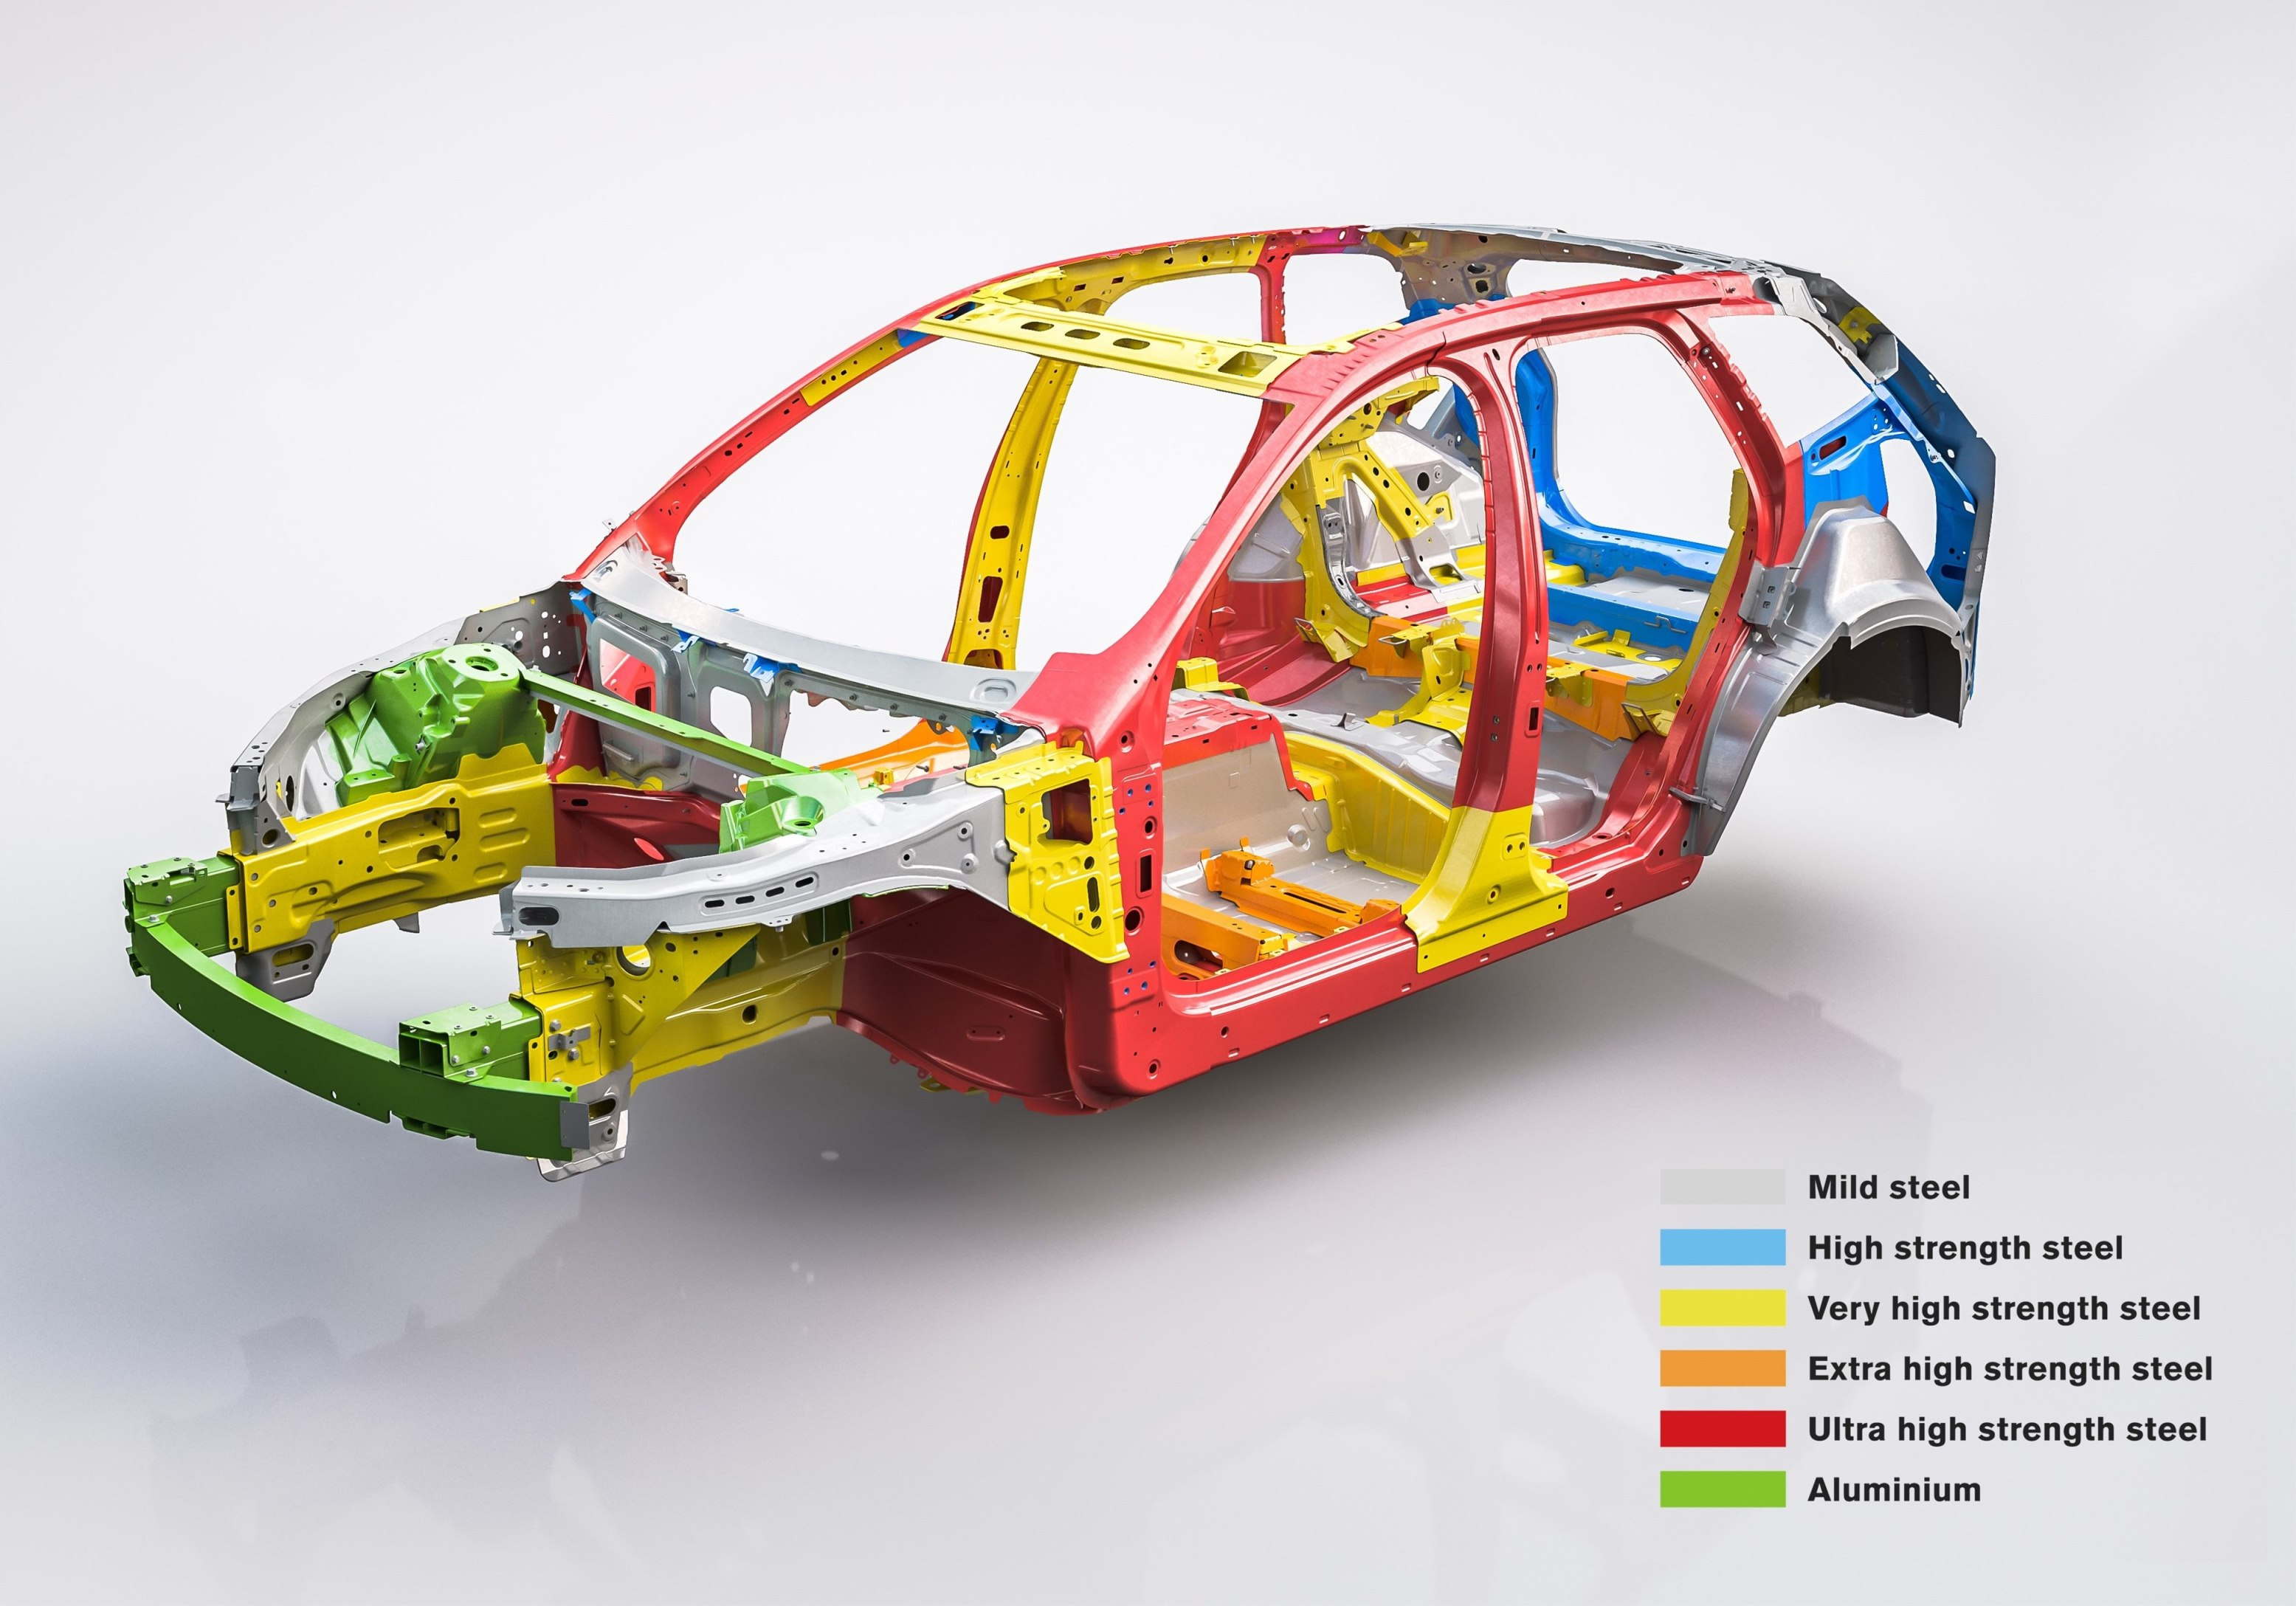 Different steel grades used in Volvo XC60 body structure